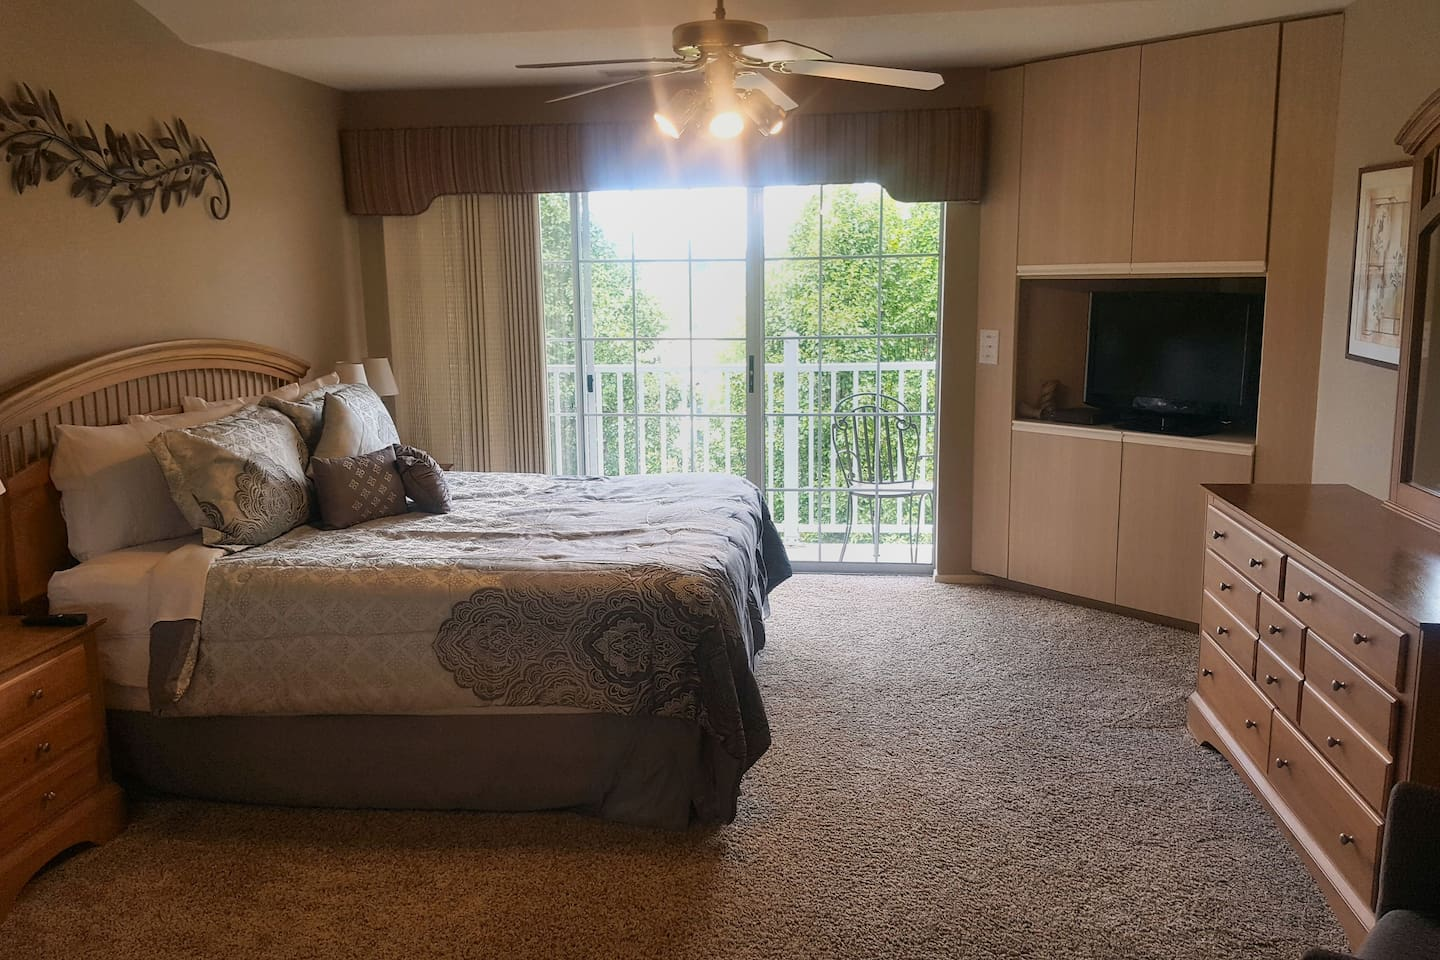 "Large King Bedroom with balcony. 32"" cable tv, dresser, 2 nights stands, plugs jacks for phones next to bed."